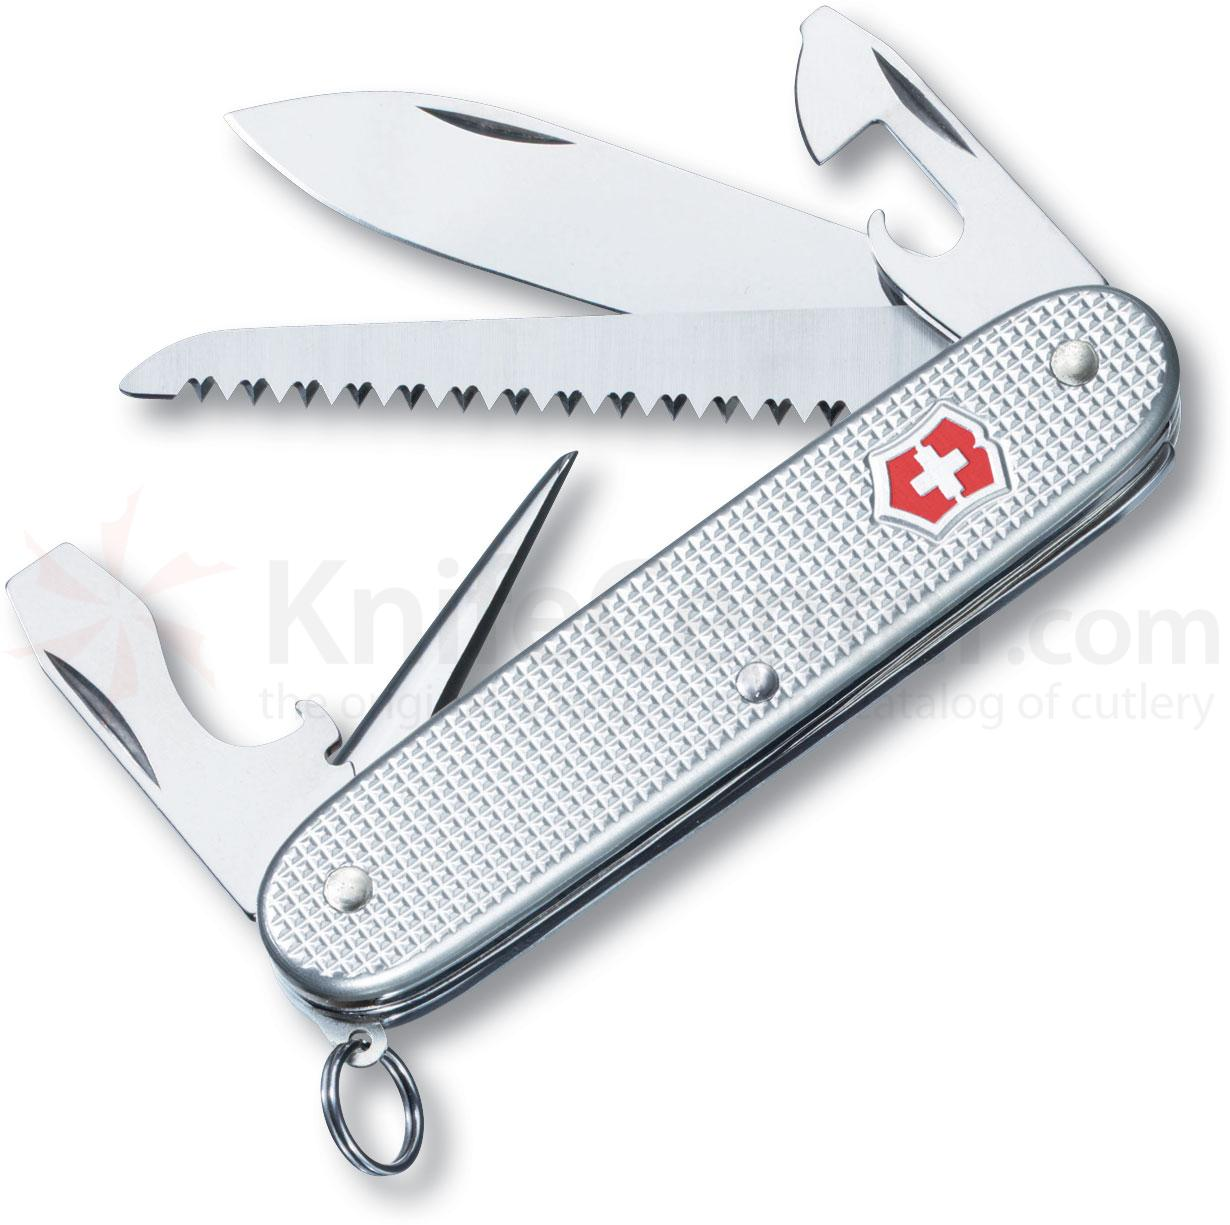 Victorinox Swiss Army Farmer Multi-Tool, Silver Alox, 3.58 inch Closed